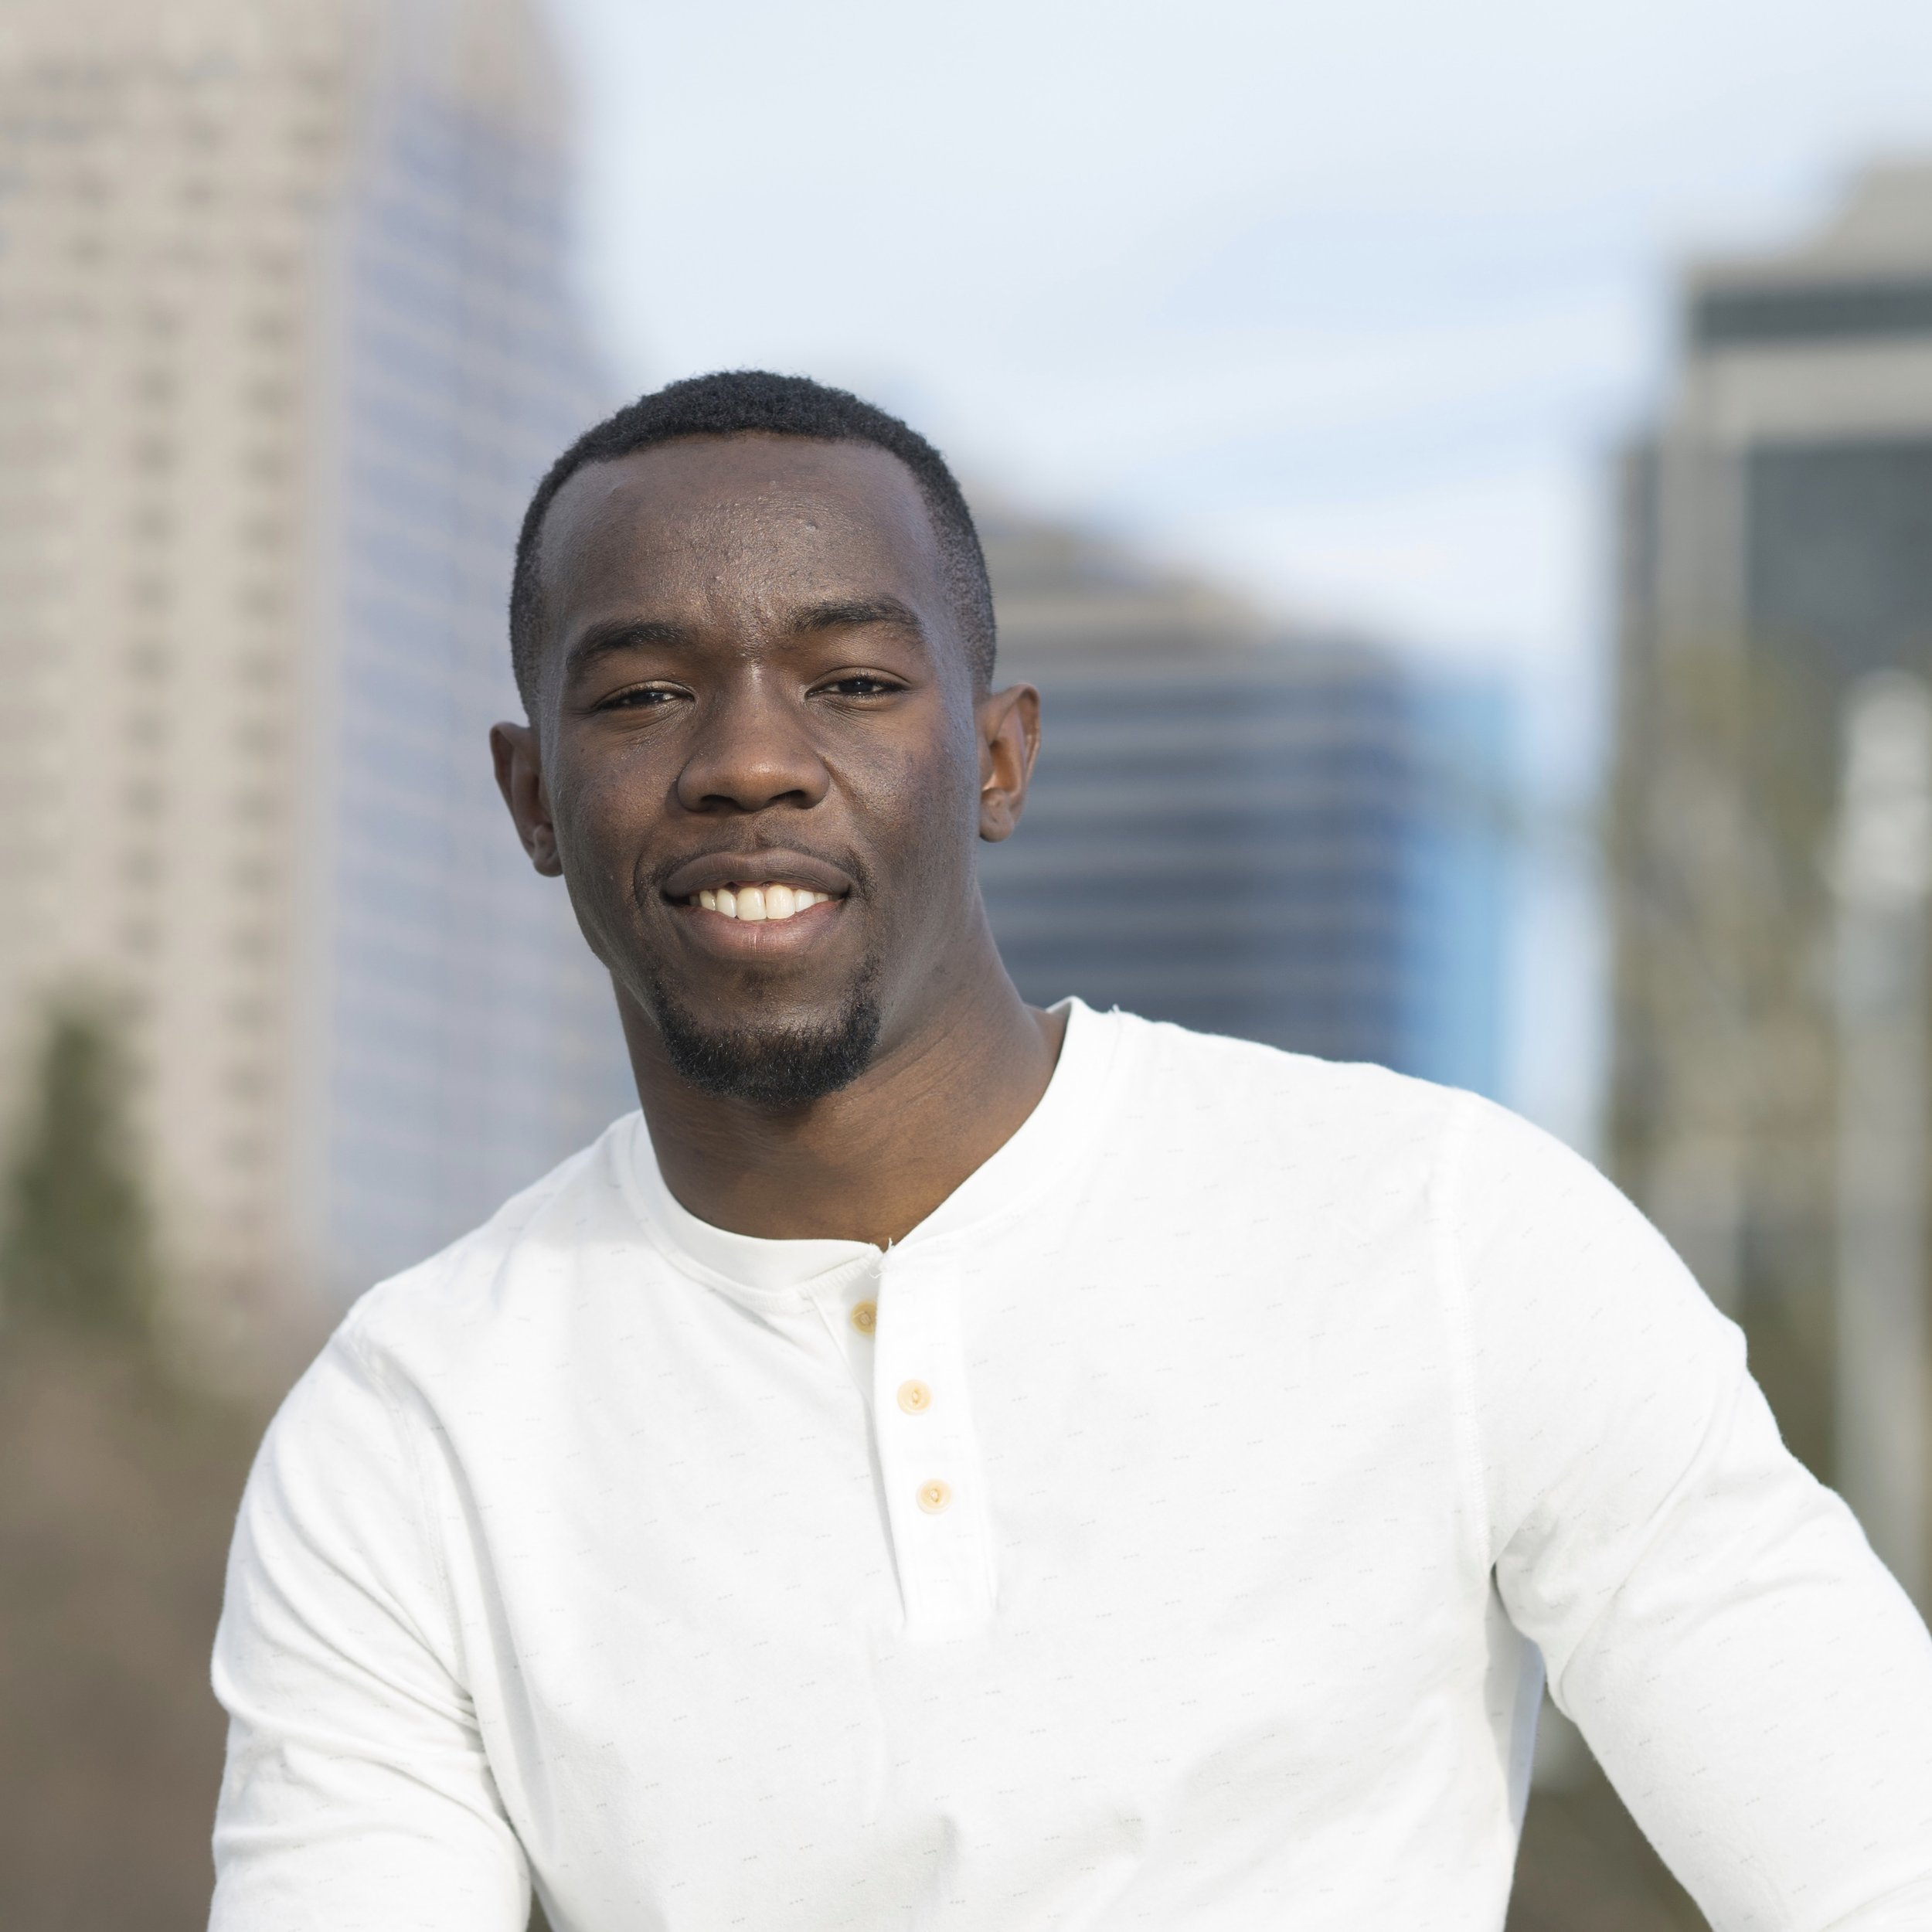 BRIAN BULAYA - As a project manager, entrepreneur, and co-host of the WDKY podcast, Brian intends to be a master of many crafts. Hailing from Sacramento, CA by way of the Democratic Republic of Congo, he hopes to use WDKY to highlight the shared narratives between us all.